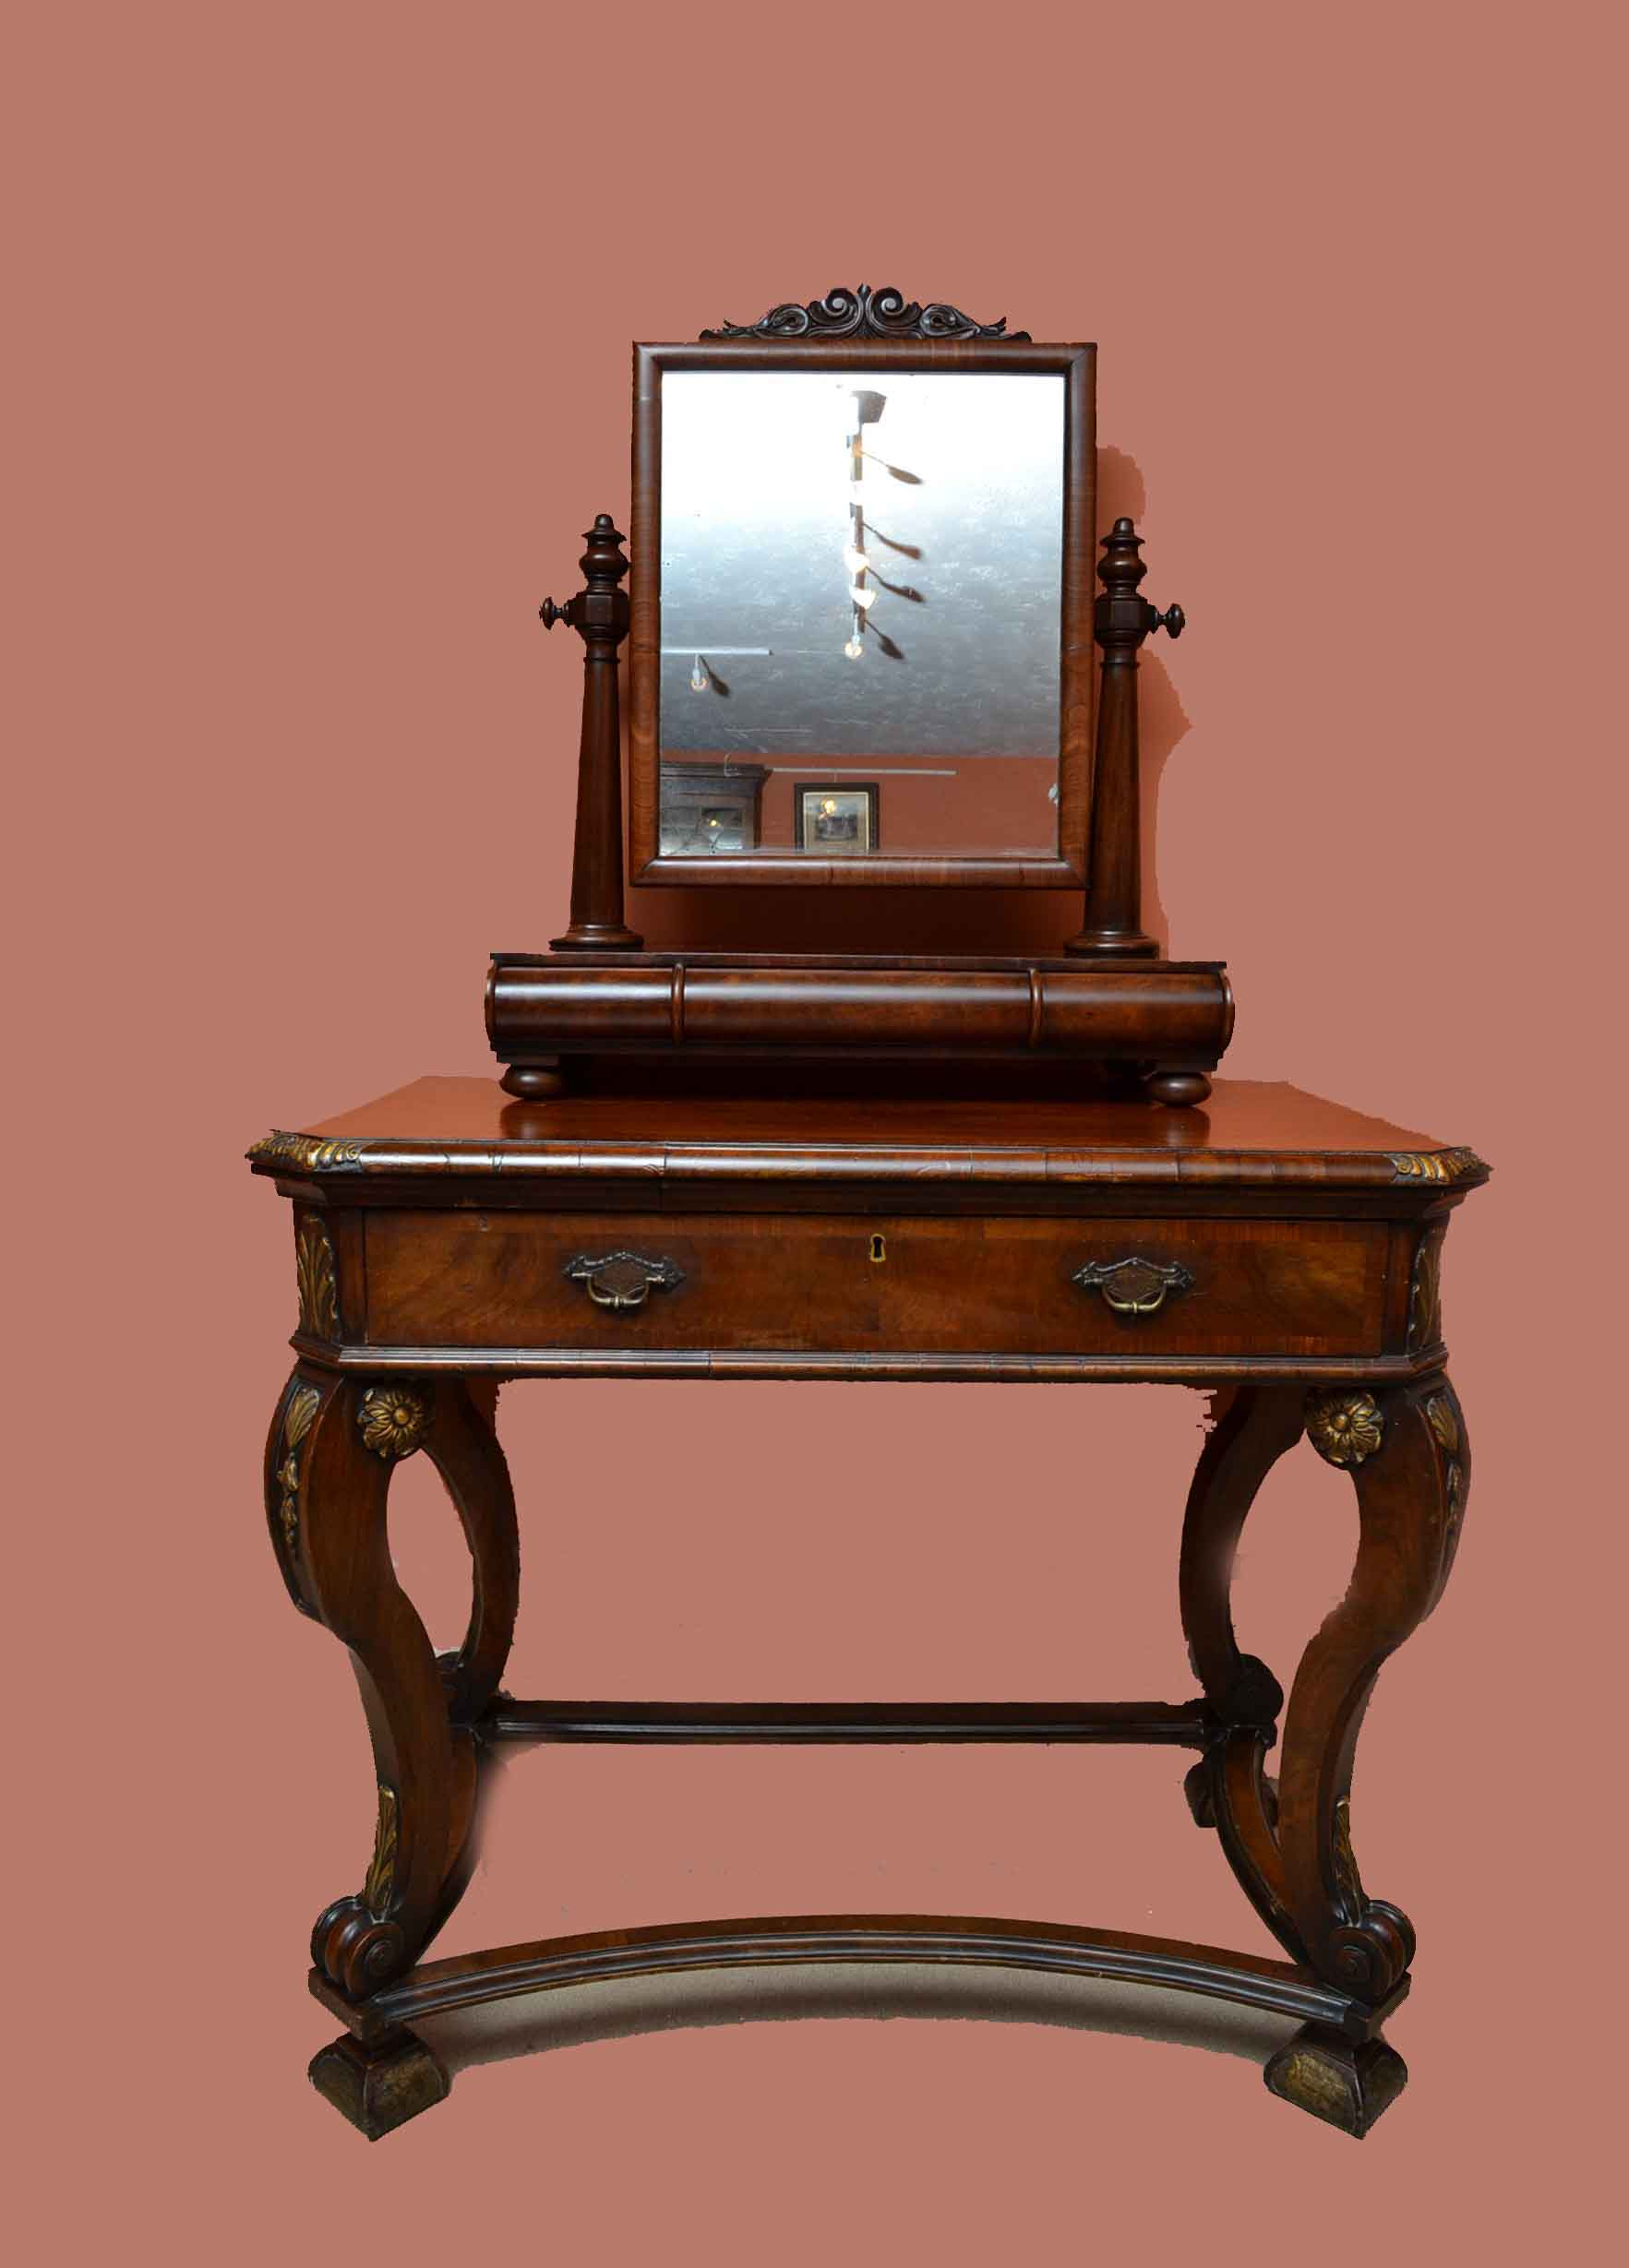 Regent Antiques Mirrors Antique Victorian Dressing  : 04113 Antique Victorian Dressing Table Mirror c1840 8 from regentantiques.com size 1765 x 2458 jpeg 134kB